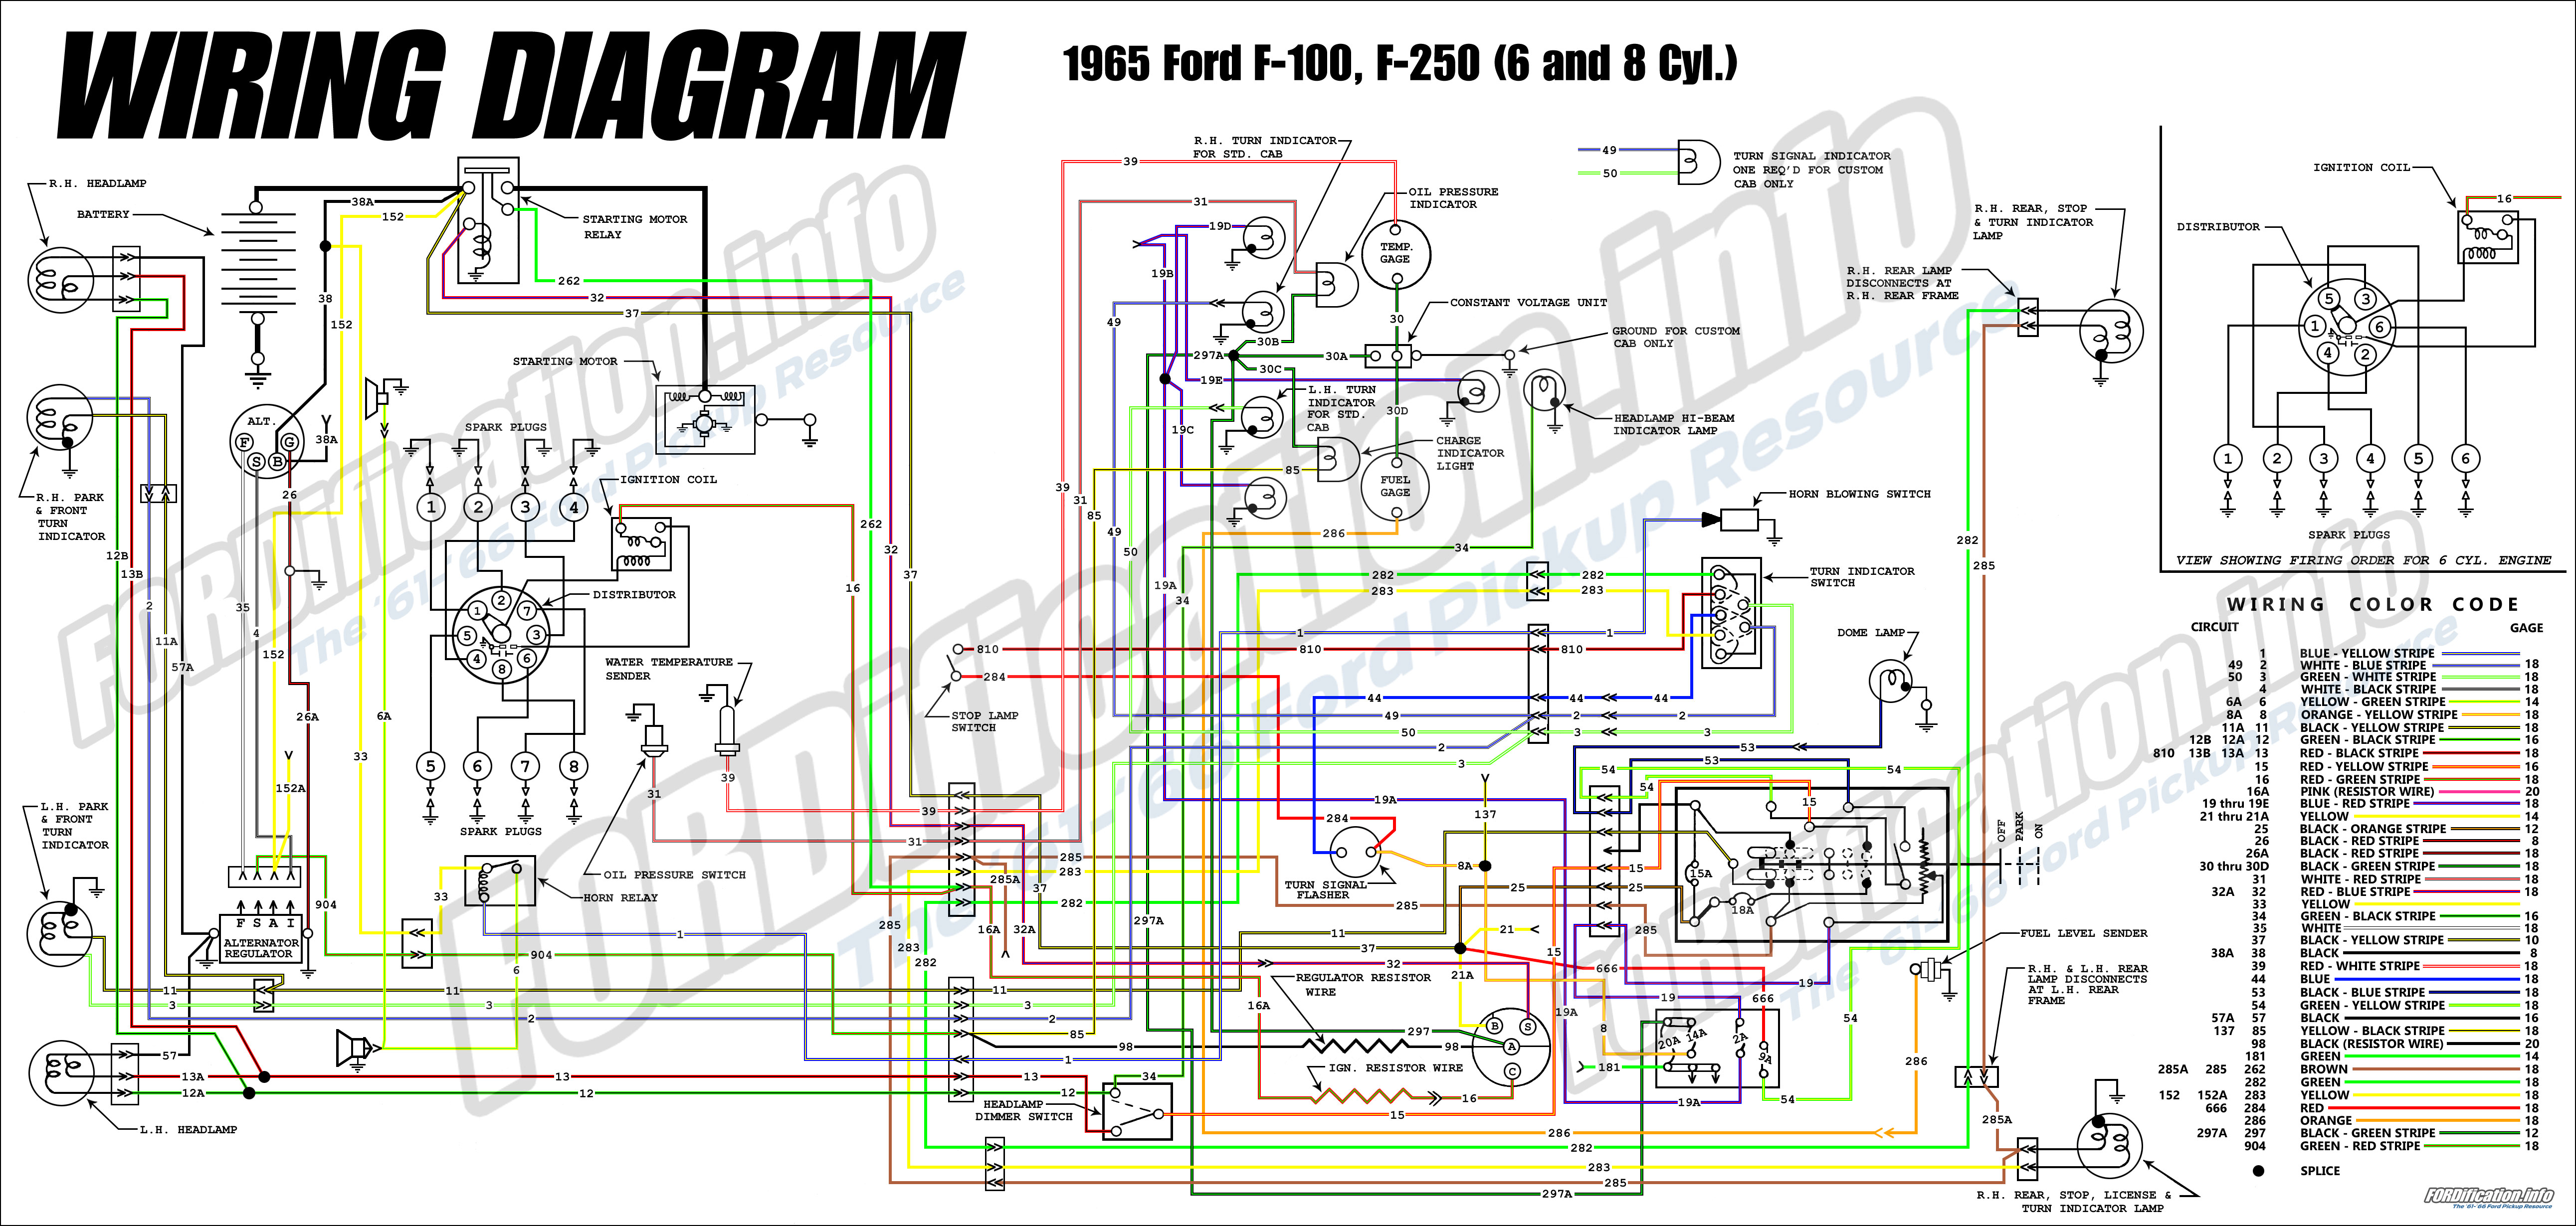 1965 ford truck wiring diagram wiring diagram for you • 1965 ford truck wiring diagrams fordification info the 61 66 rh fordification info 1965 ford truck ignition wiring diagram 1965 ford f100 wiring diagram